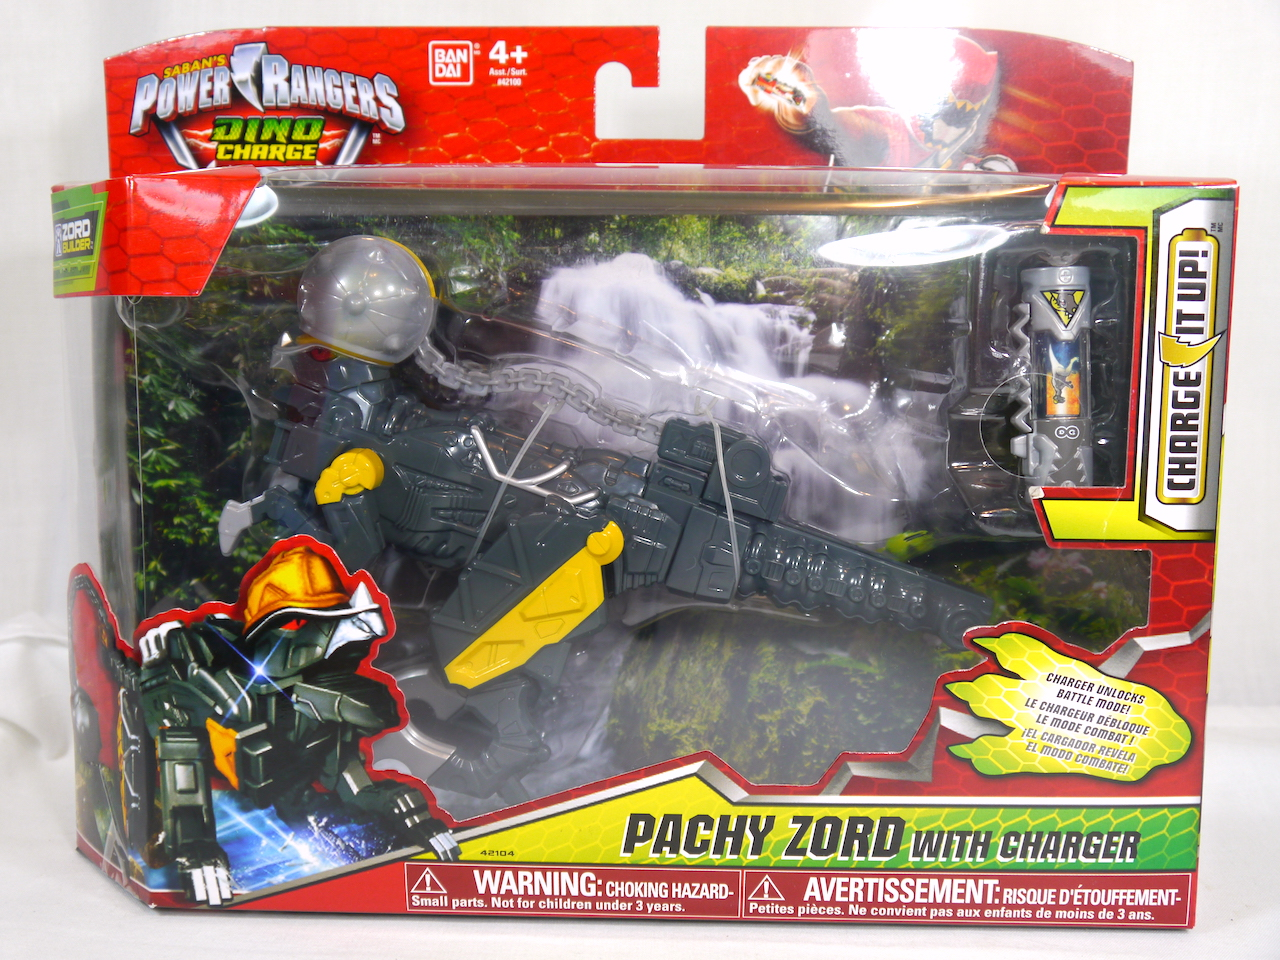 Henshin Grid New Re Colored Dino Charge Zords Coming Soon